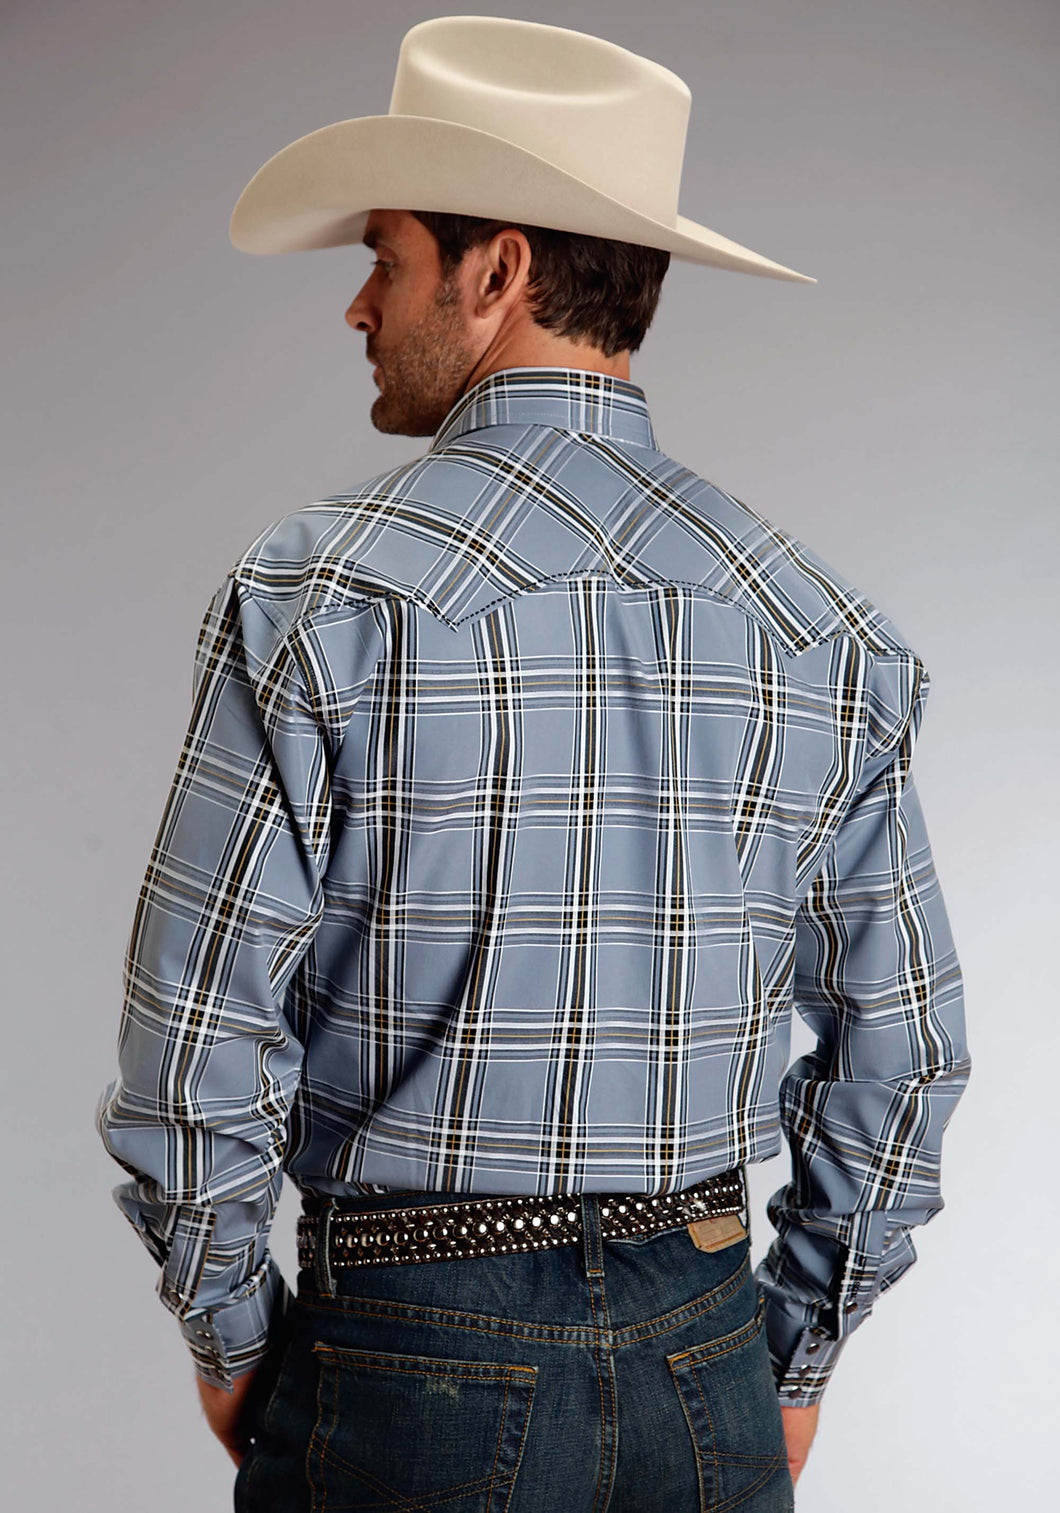 Stetson Men's Collection- Spring Ii Stetson Mens Long Sleeve Shirt 0824 Prospect Check